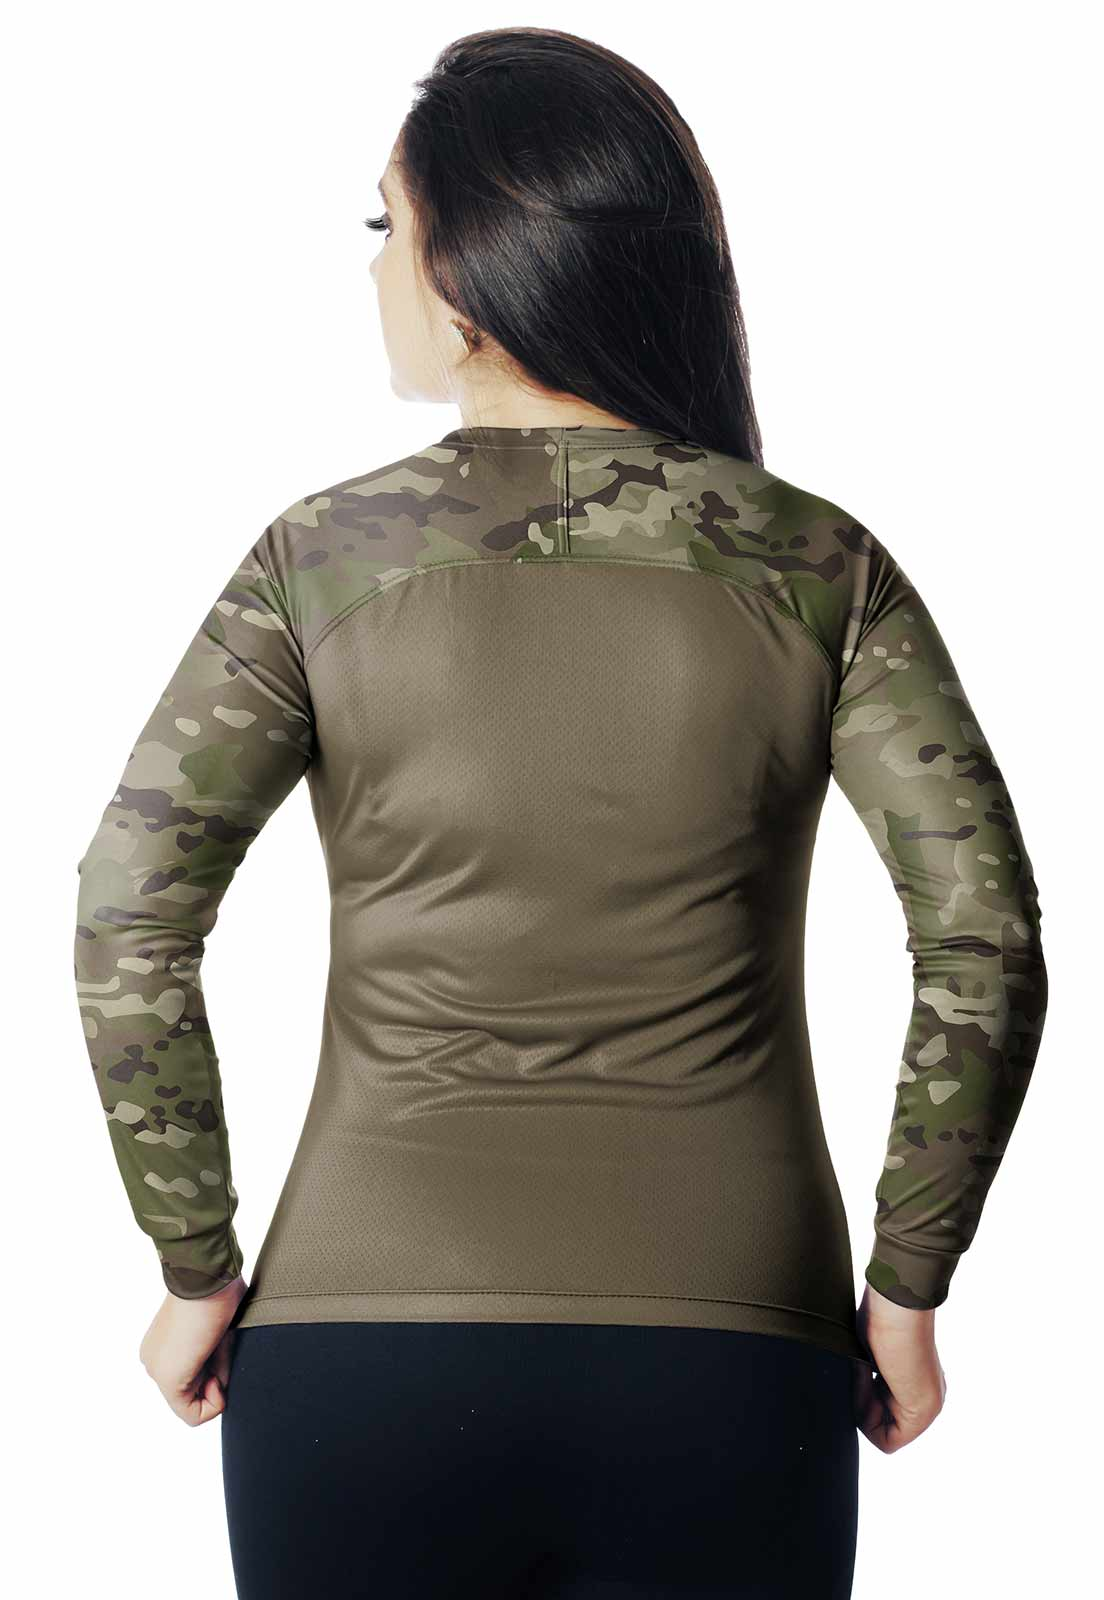 CAMISA DE PESCA CAMUFLADA LAZER PROTEÇÃO UV MULTICAM 14 REAL HUNTER FEMININA  - REAL HUNTER OUTDOORS